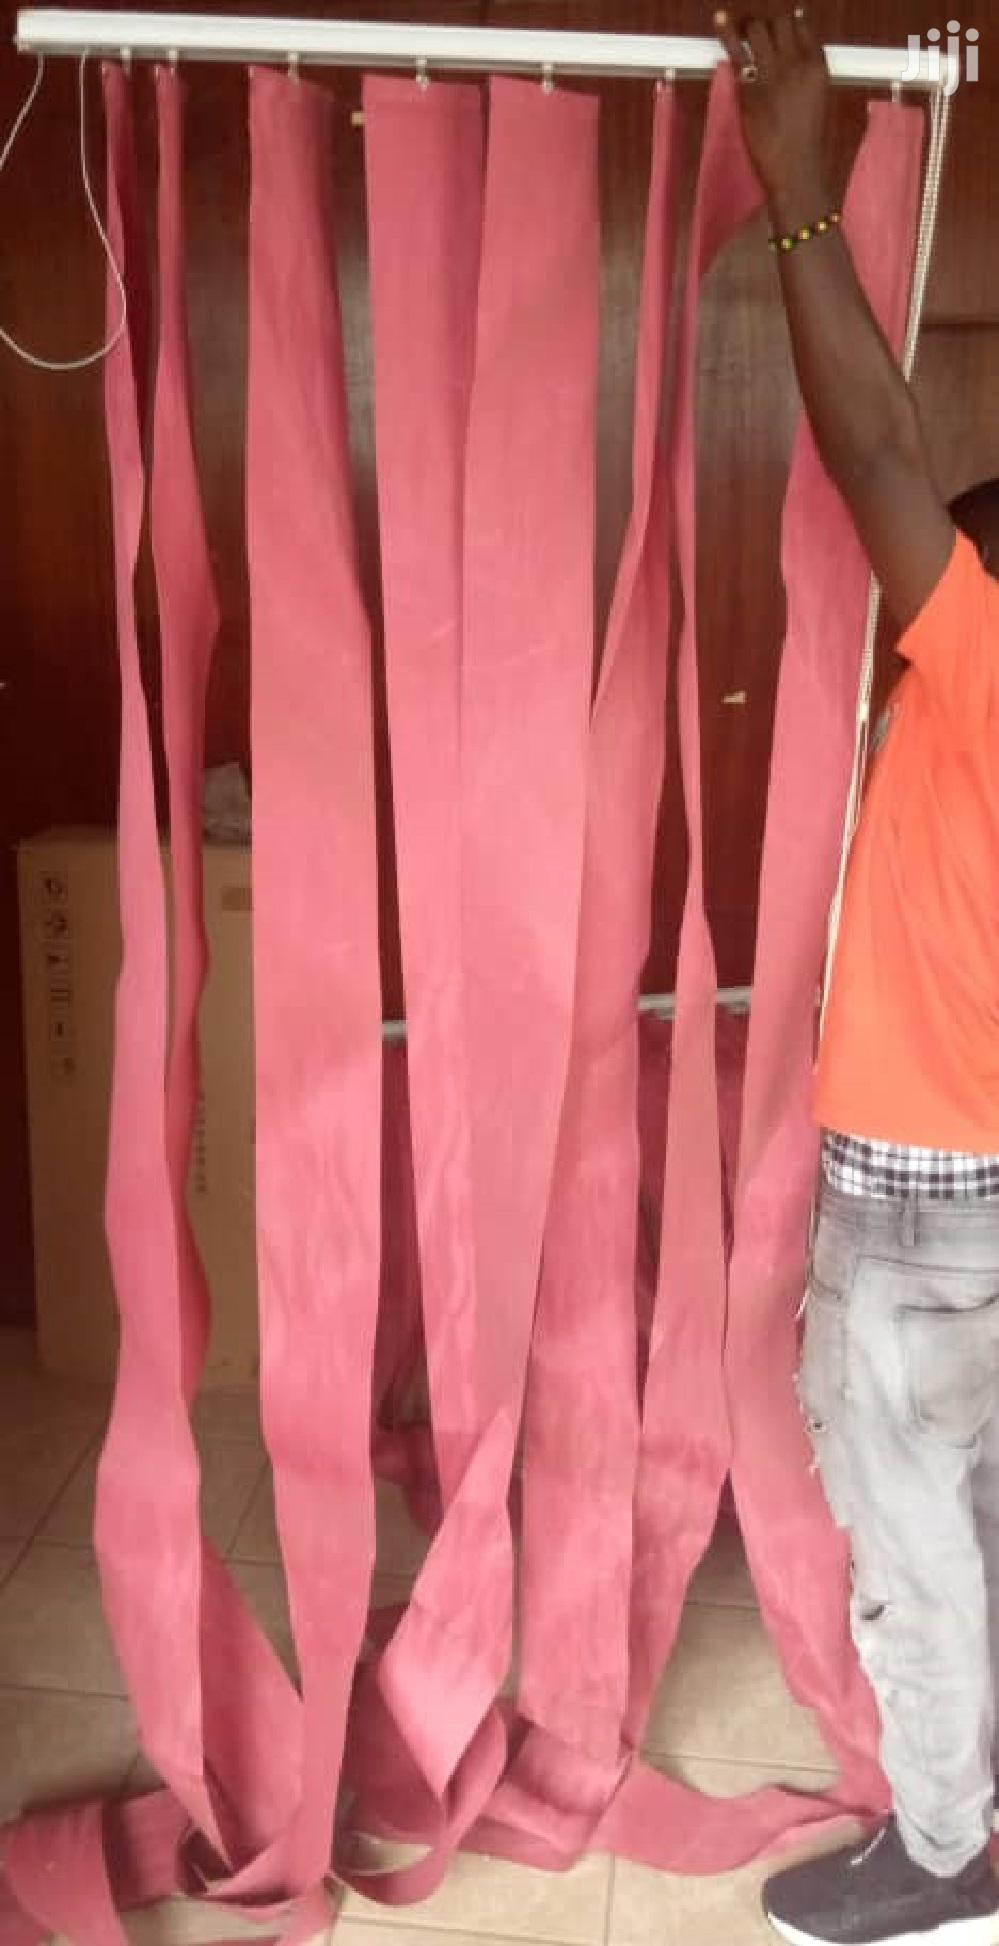 3pcs Sliding Curtains | Home Accessories for sale in Roman Ridge, Greater Accra, Ghana